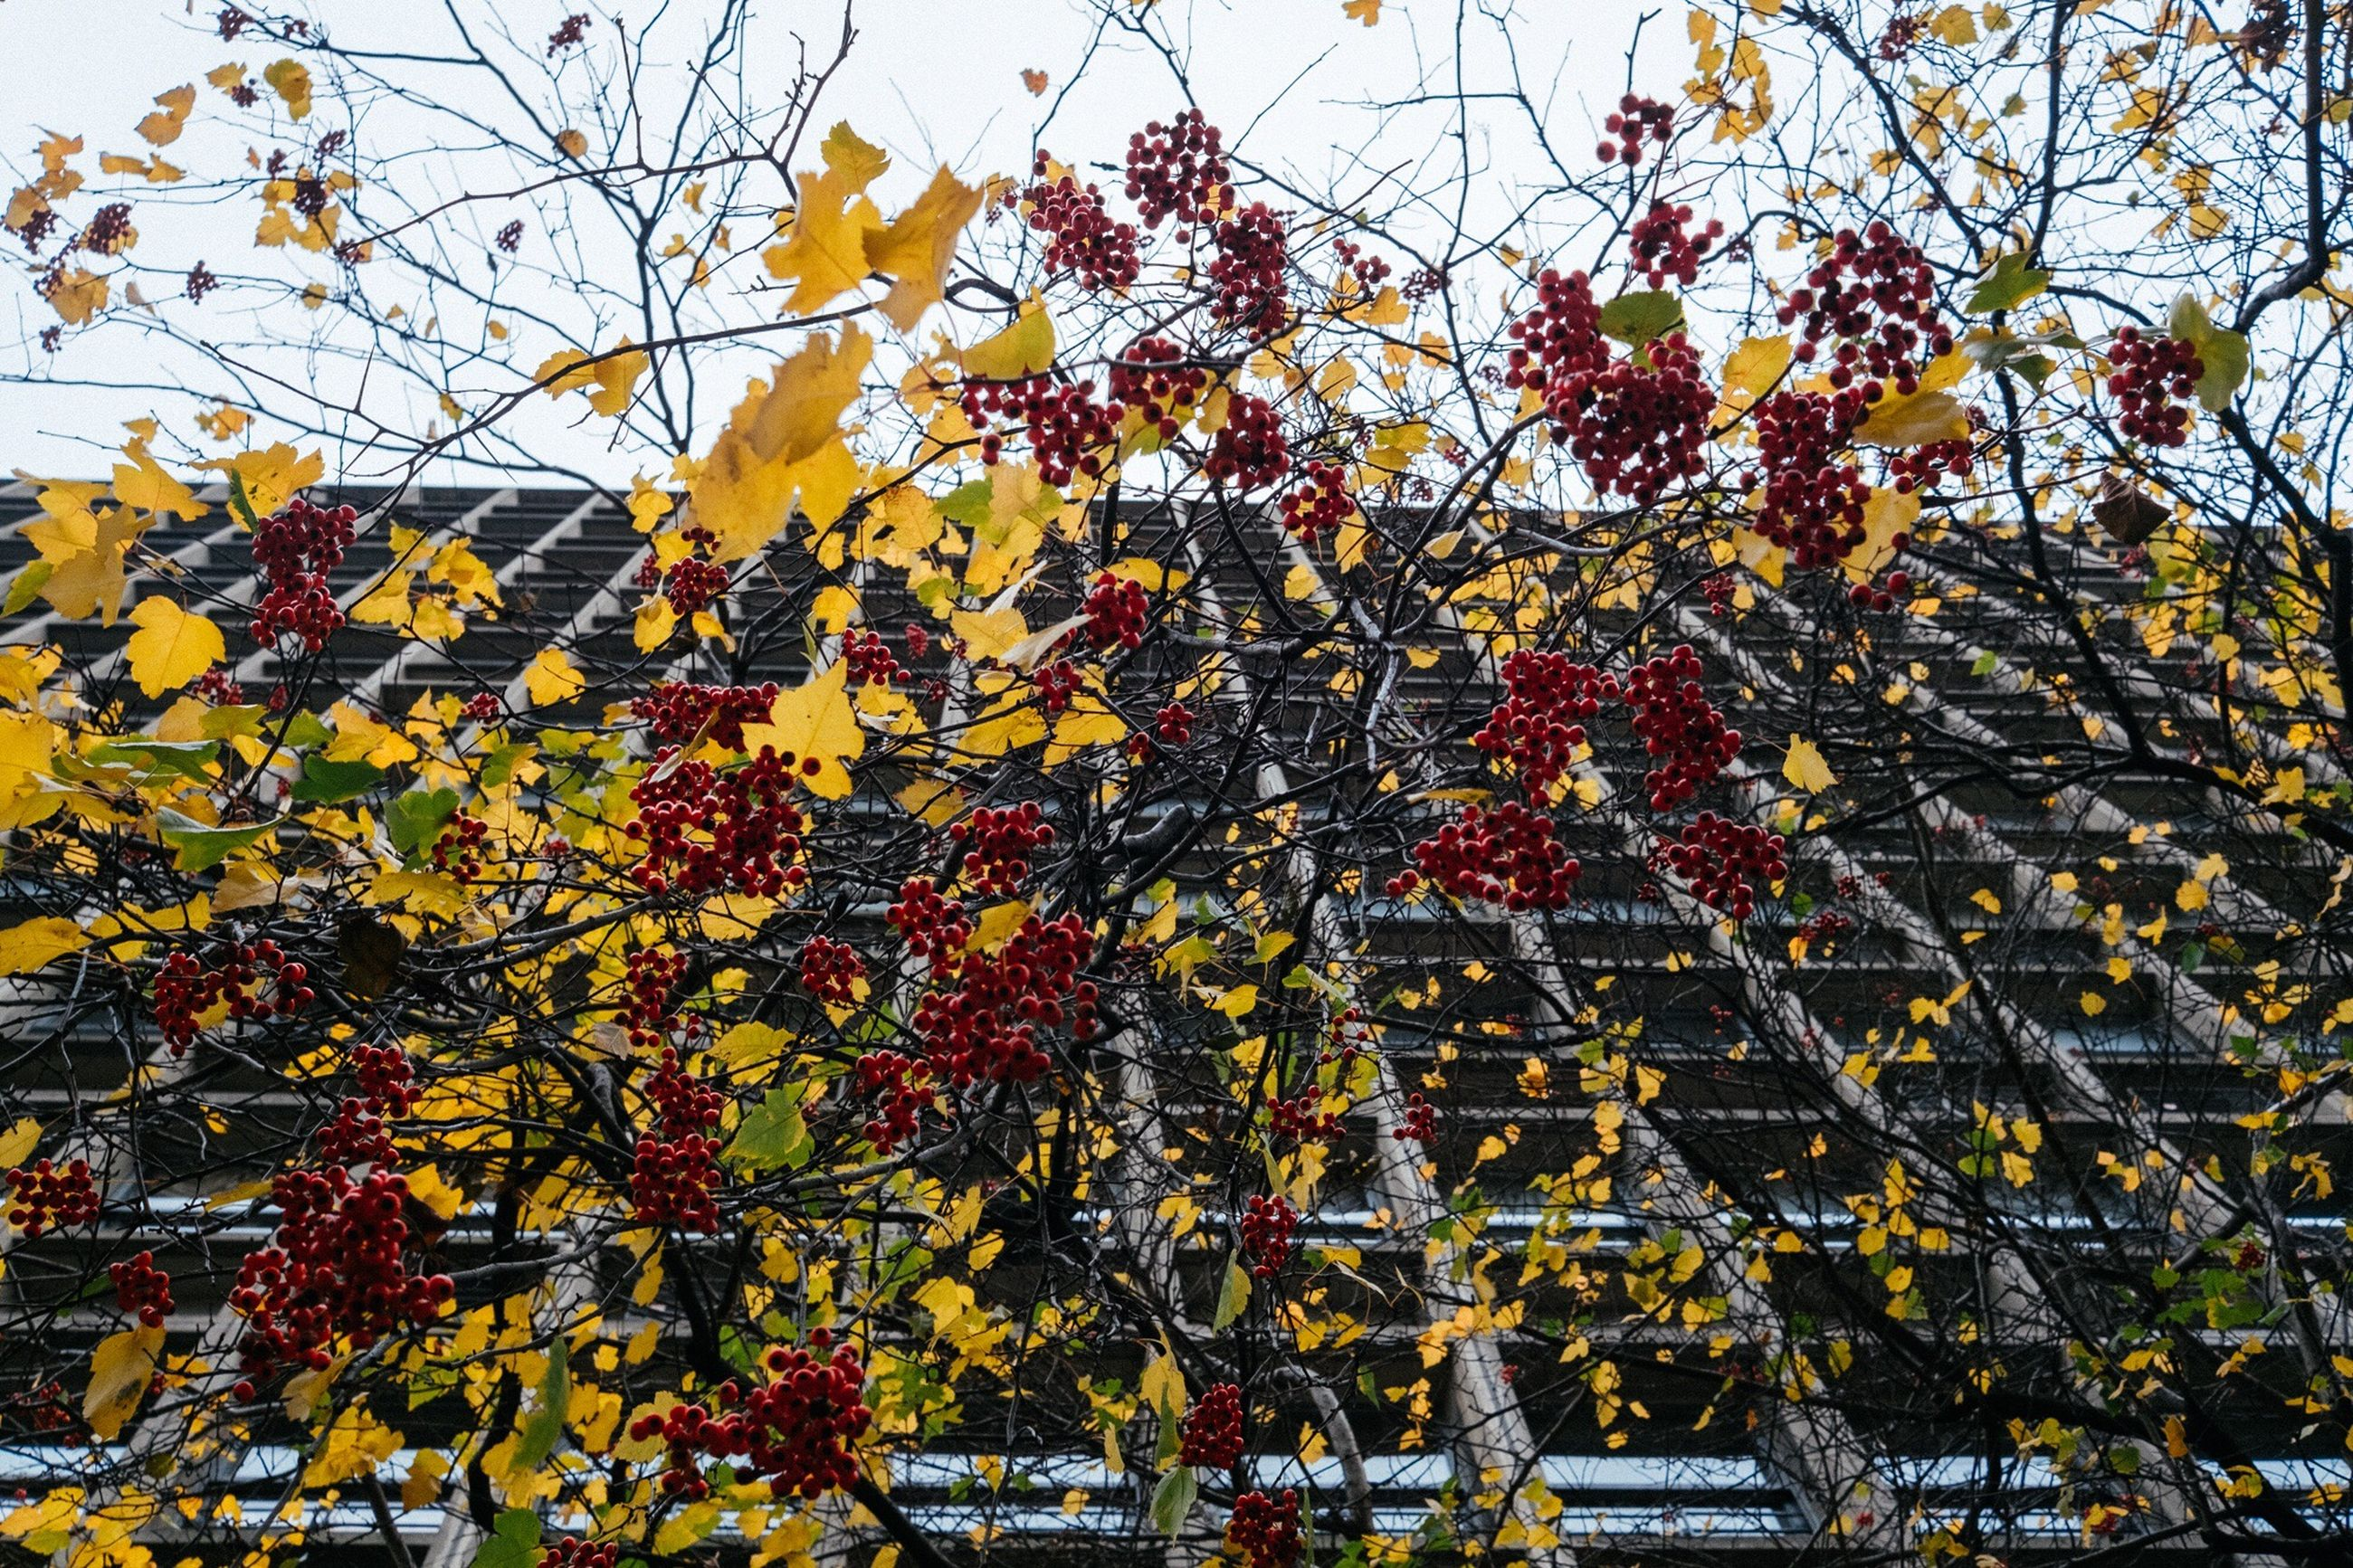 growth, flower, branch, tree, low angle view, day, autumn, outdoors, nature, beauty in nature, yellow, no people, leaf, freshness, architecture, built structure, building exterior, fragility, springtime, close-up, sky